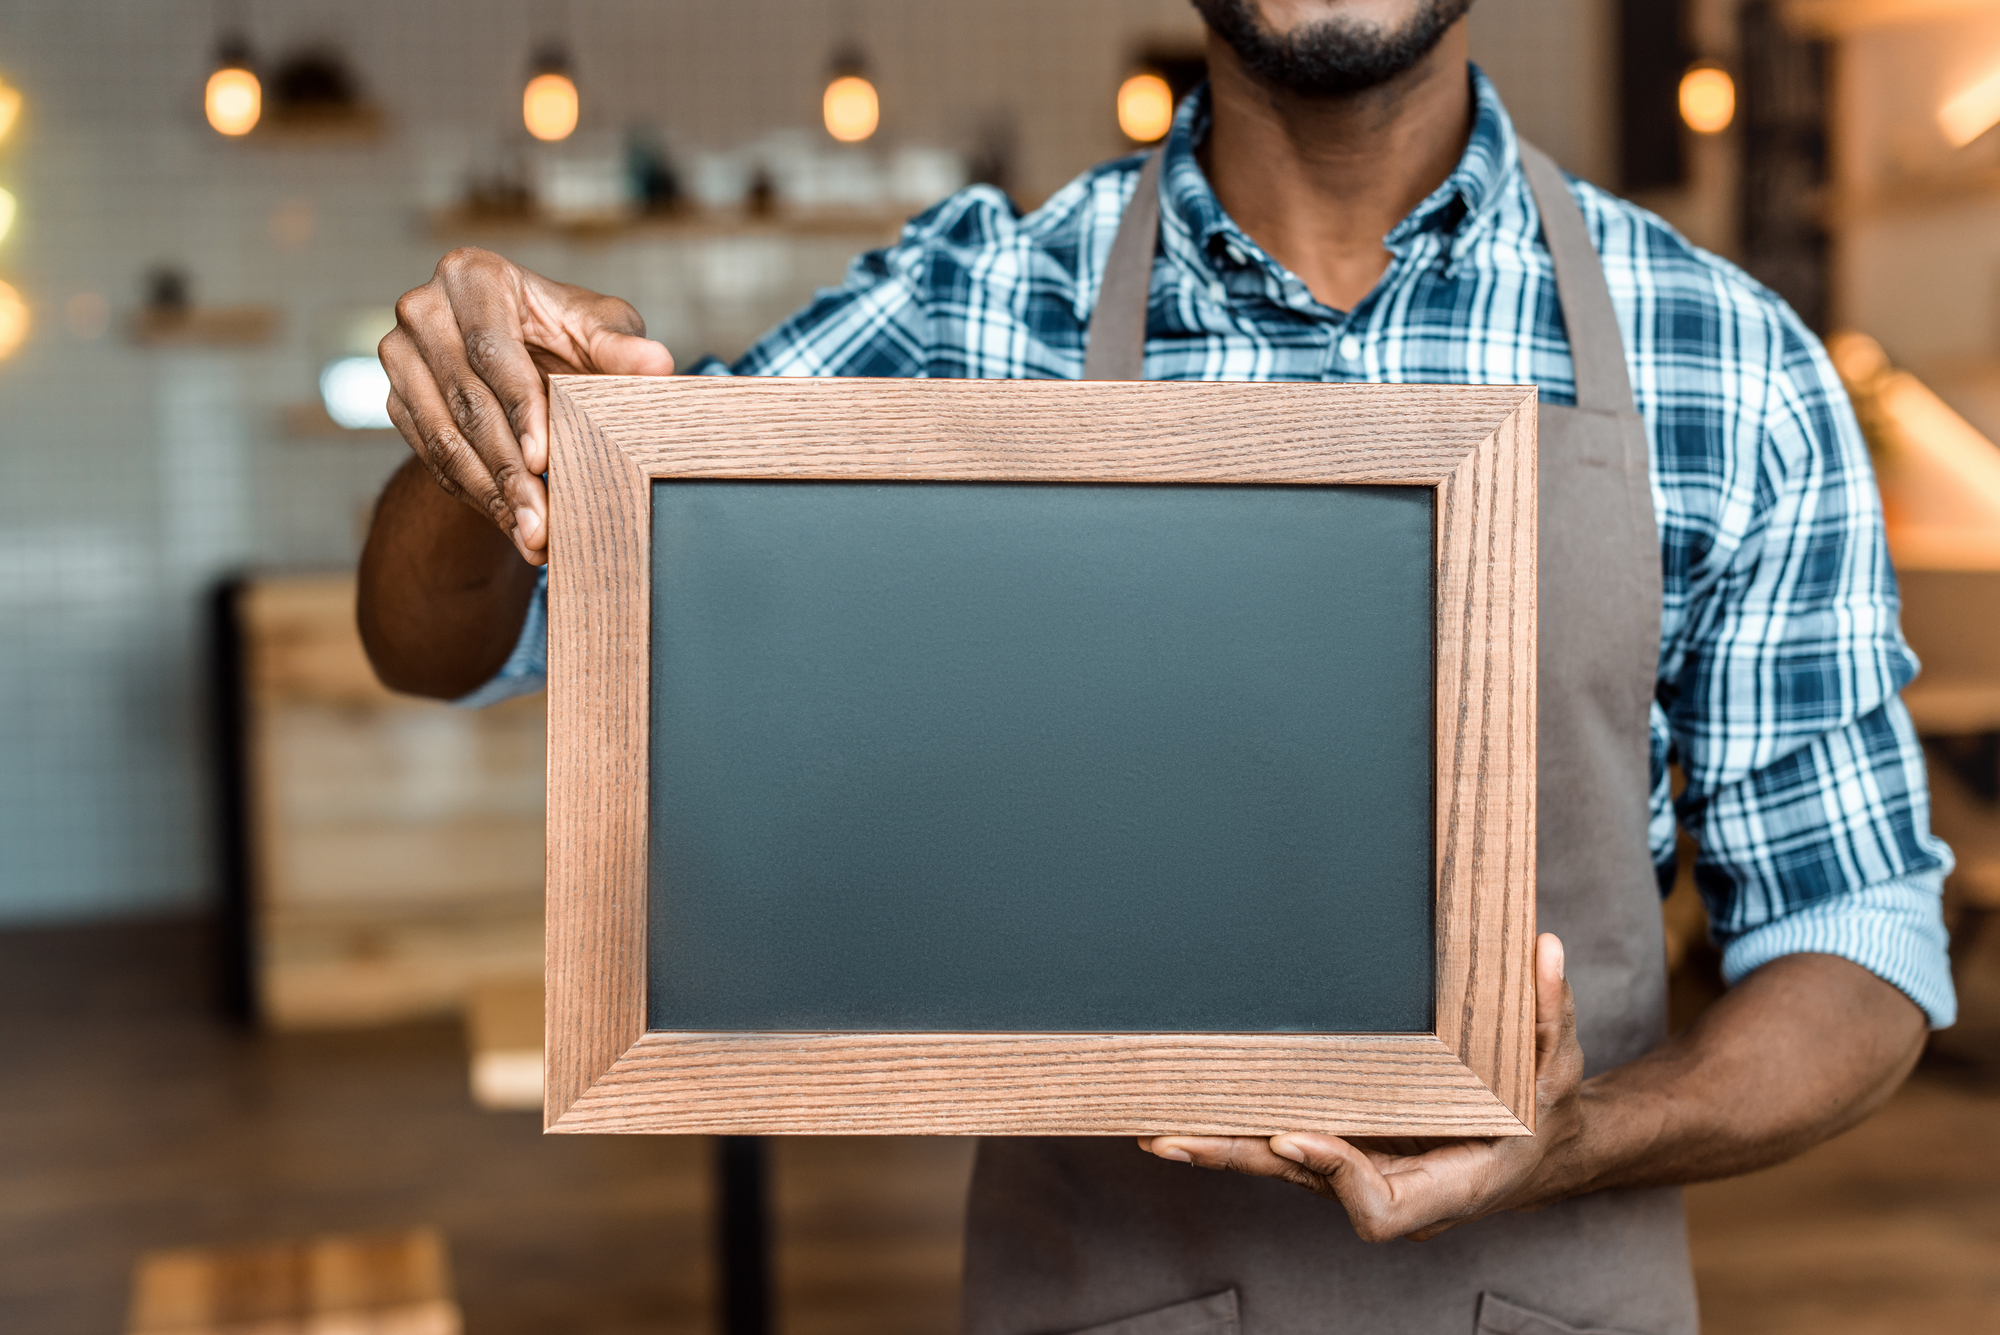 Easy Wood Projects That Make Money